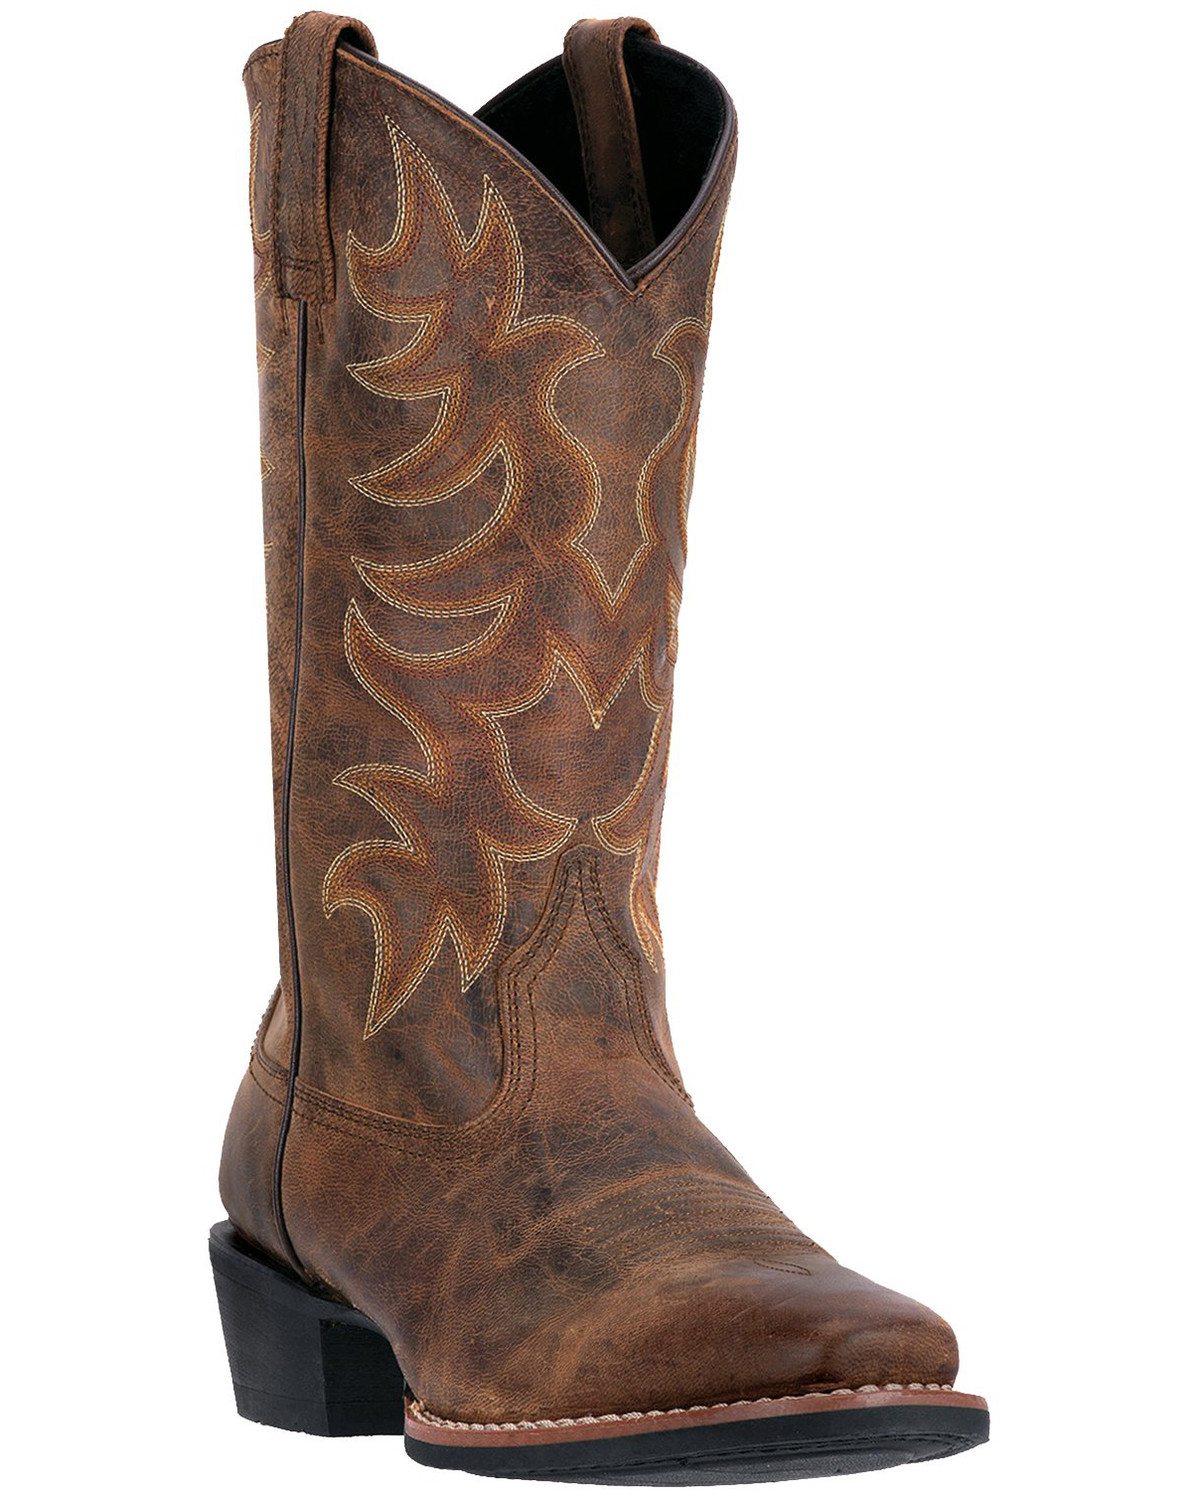 Laredo Goatskin Leather Cowboy Boots - Square Toe - Country Outfitter